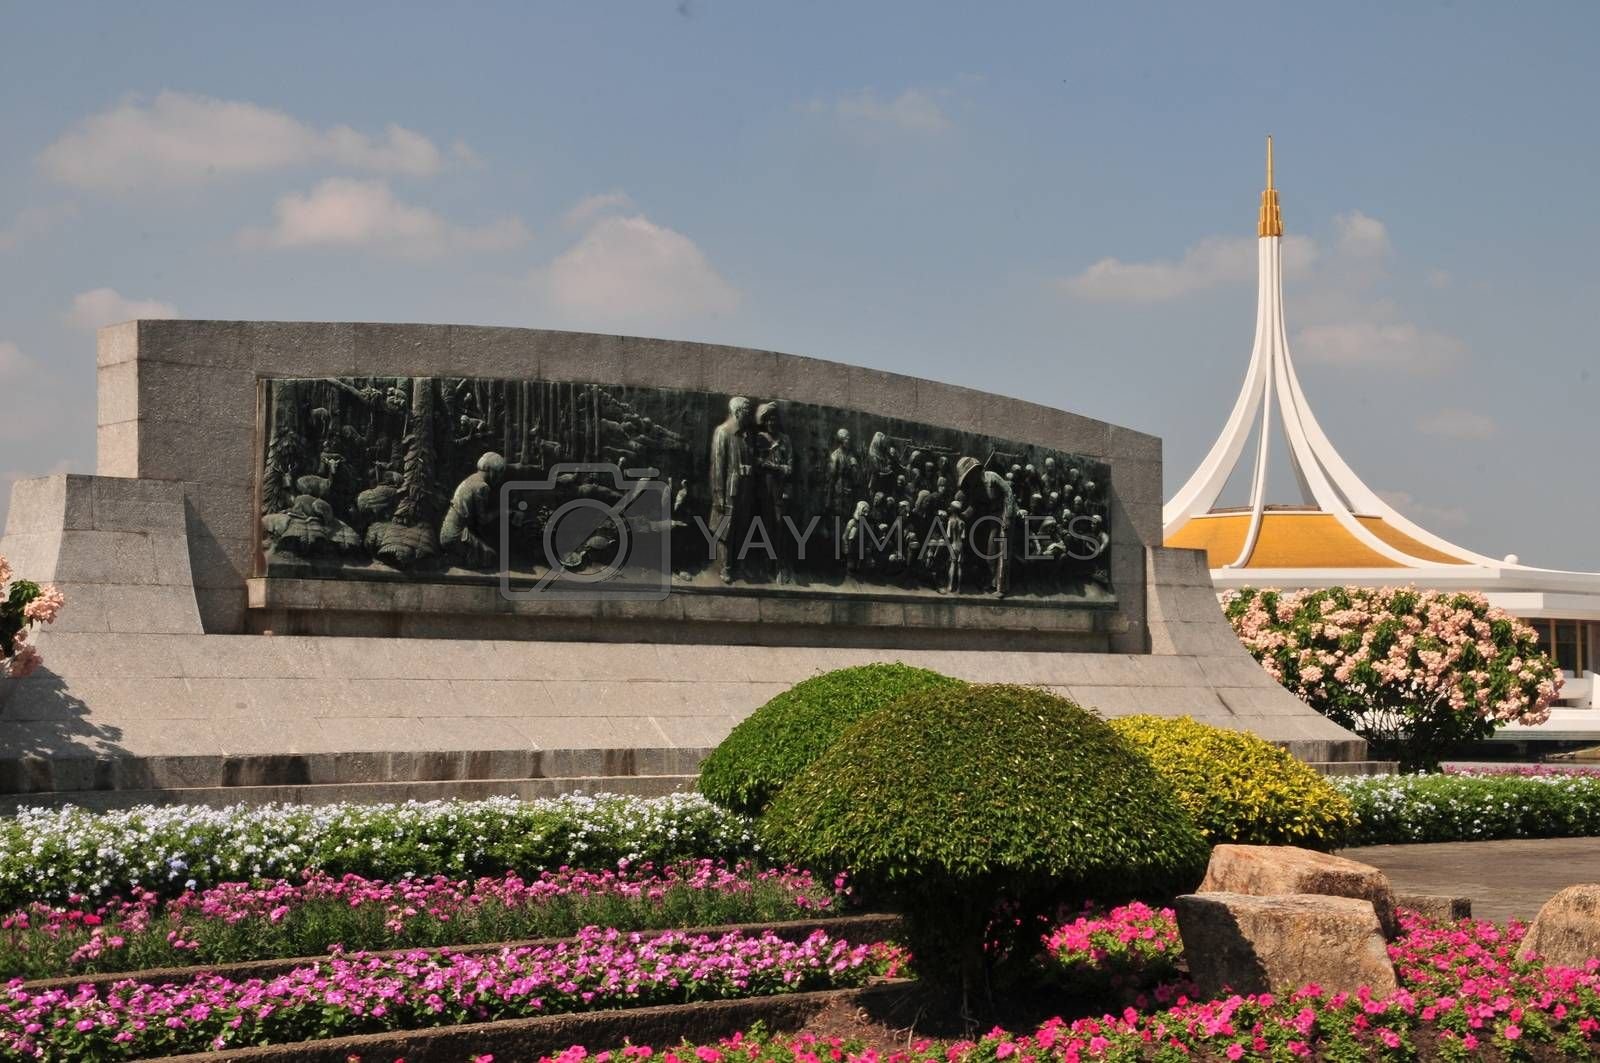 Bangkok, Thailand. - November 16, 2019 : Ratchamangkhala Pavilion of Suan Luang Rama IX Public Park Bangkok,Thailand With beautifully decorated flowers